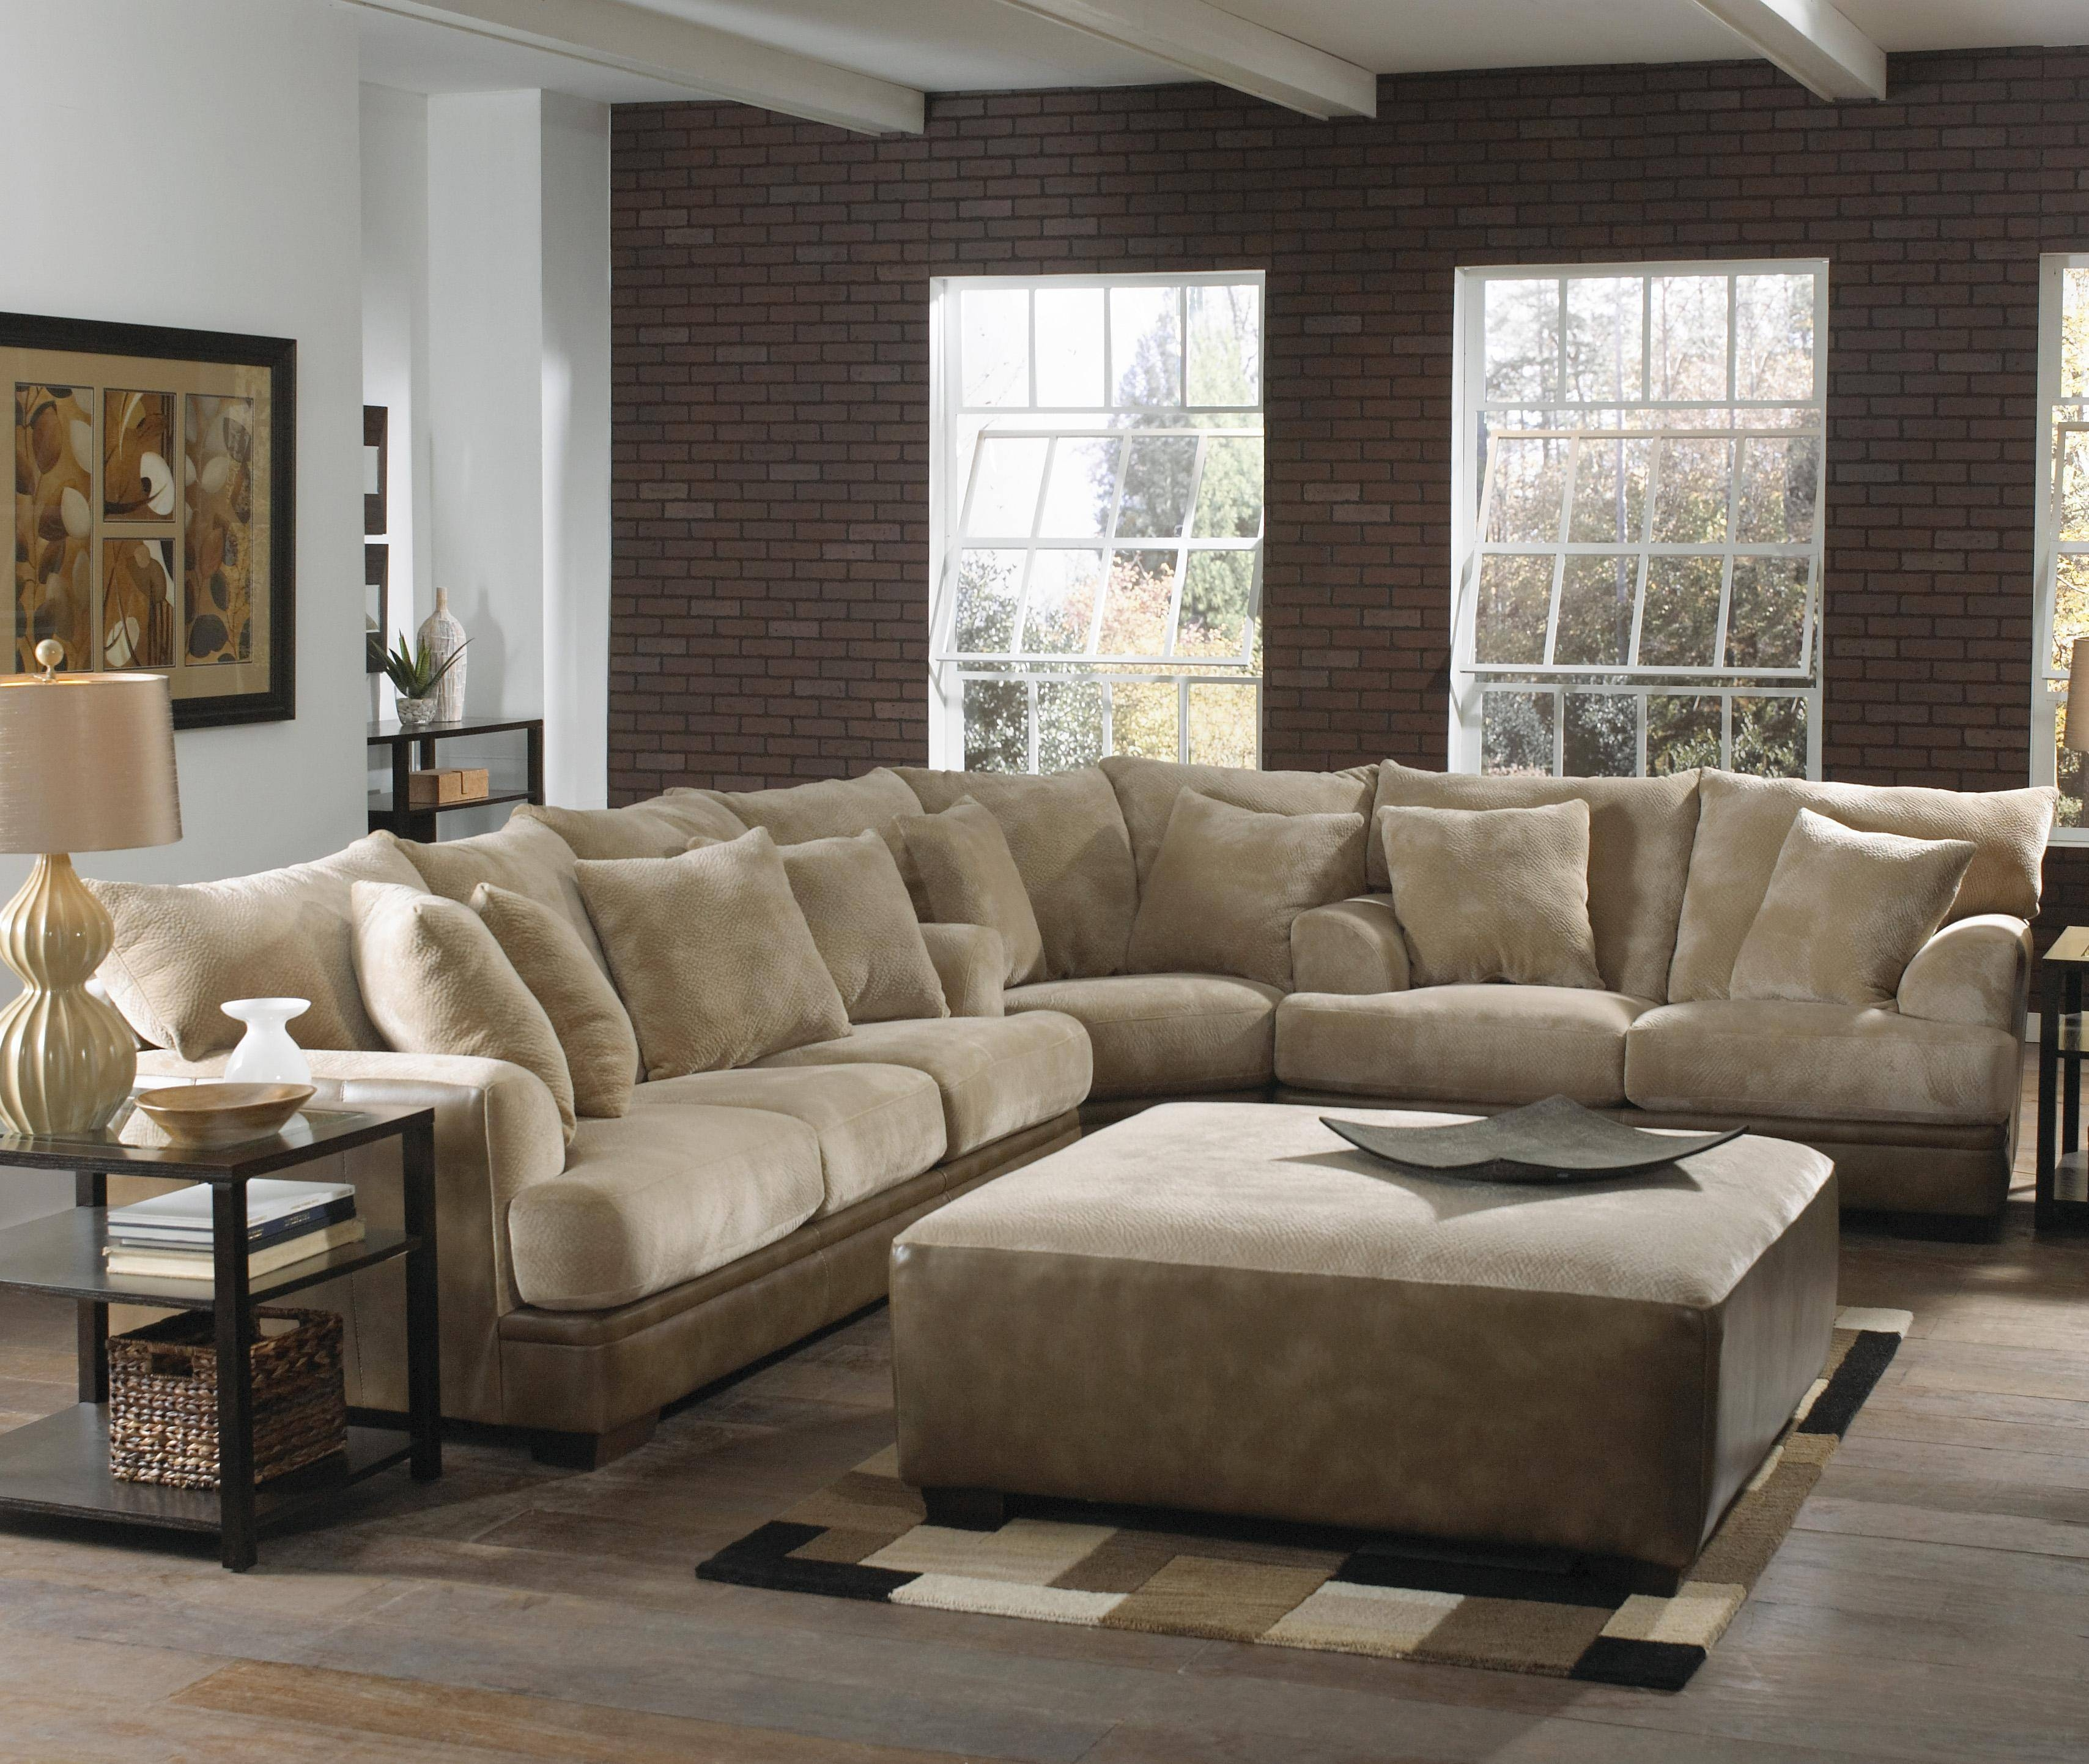 Furniture: Comfortable Deep Seat Sectional For Your Living Room inside Deep Cushioned Sofas (Image 15 of 30)